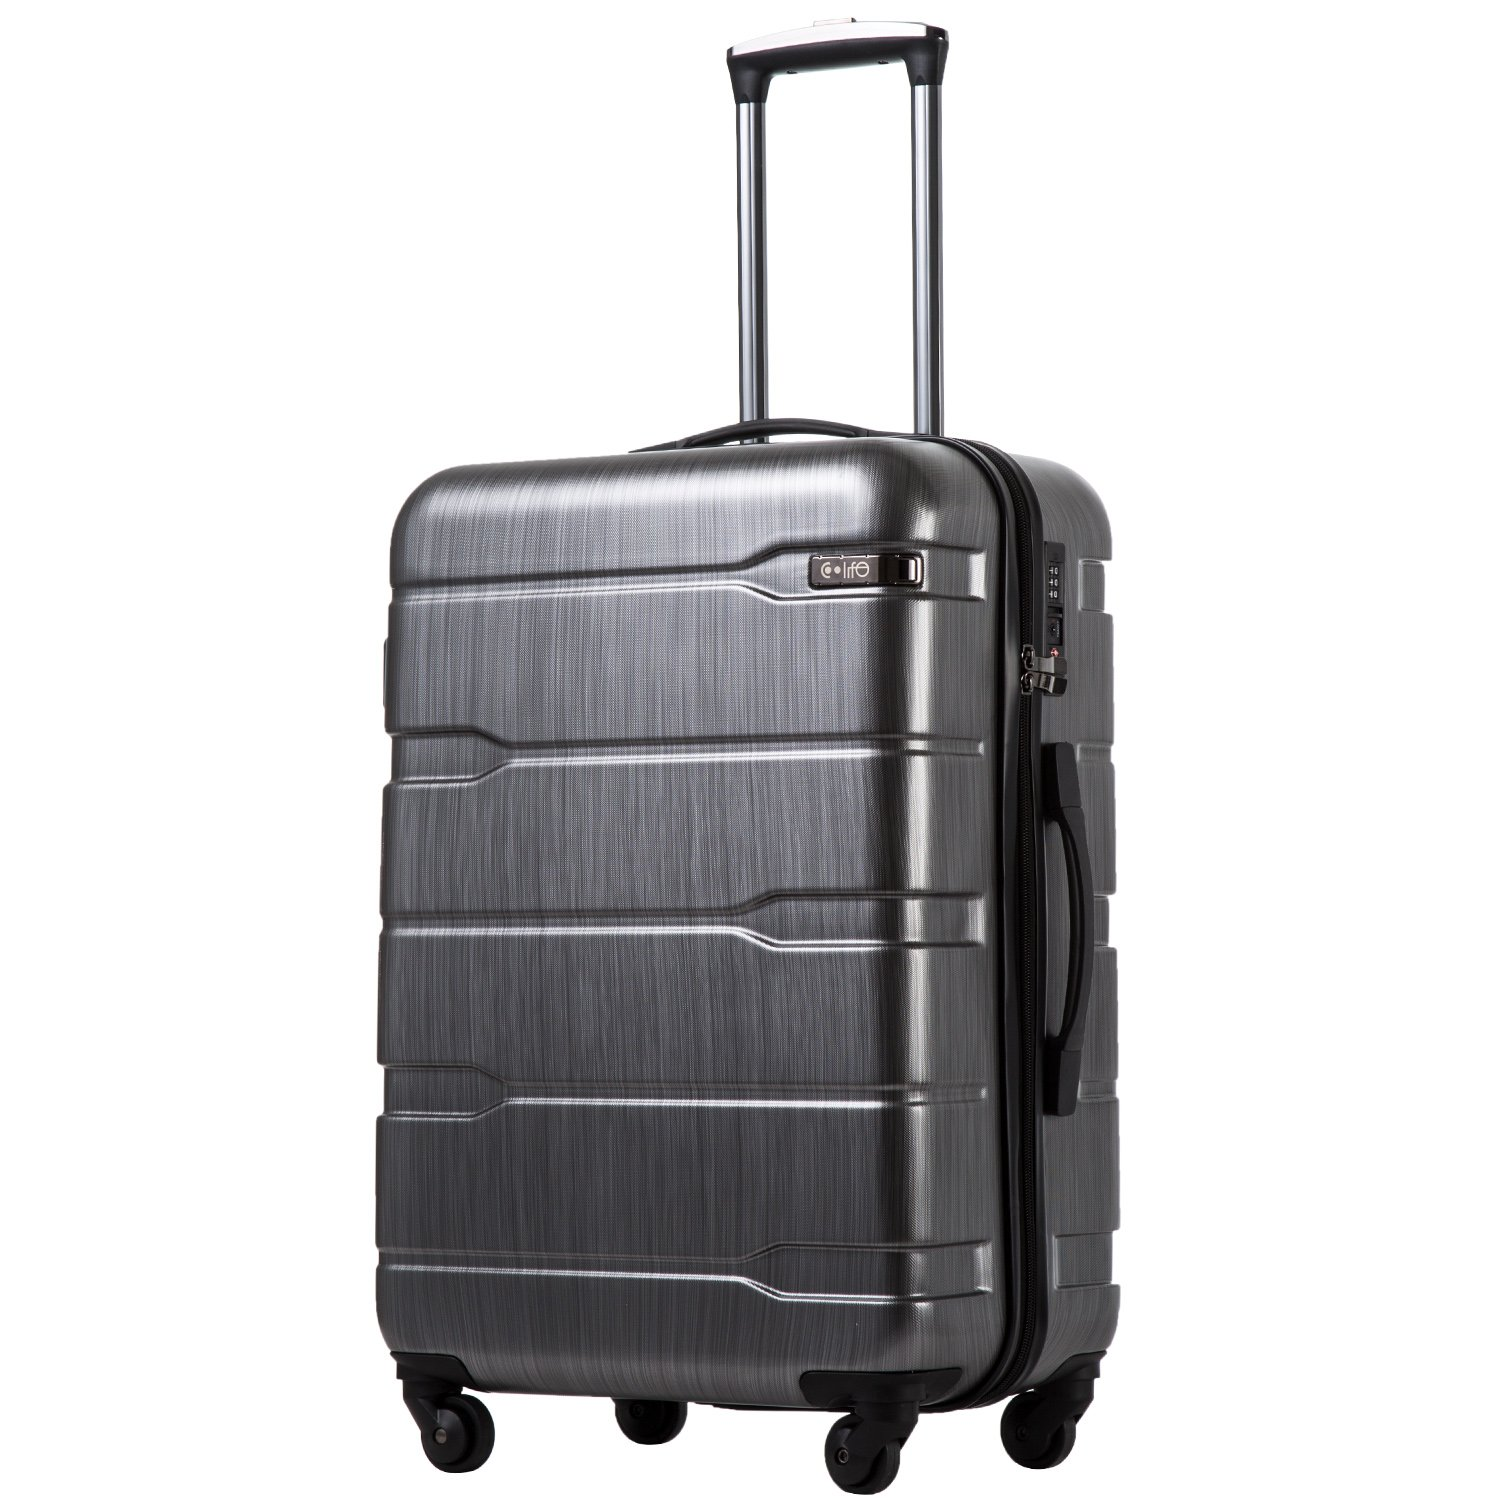 COOLIFE Luggage Expandable(only 28'') Suitcase PC+ABS Spinner Built-in TSA Lock 20in 24in 28in Carry on (Charcoal, L(28in).)